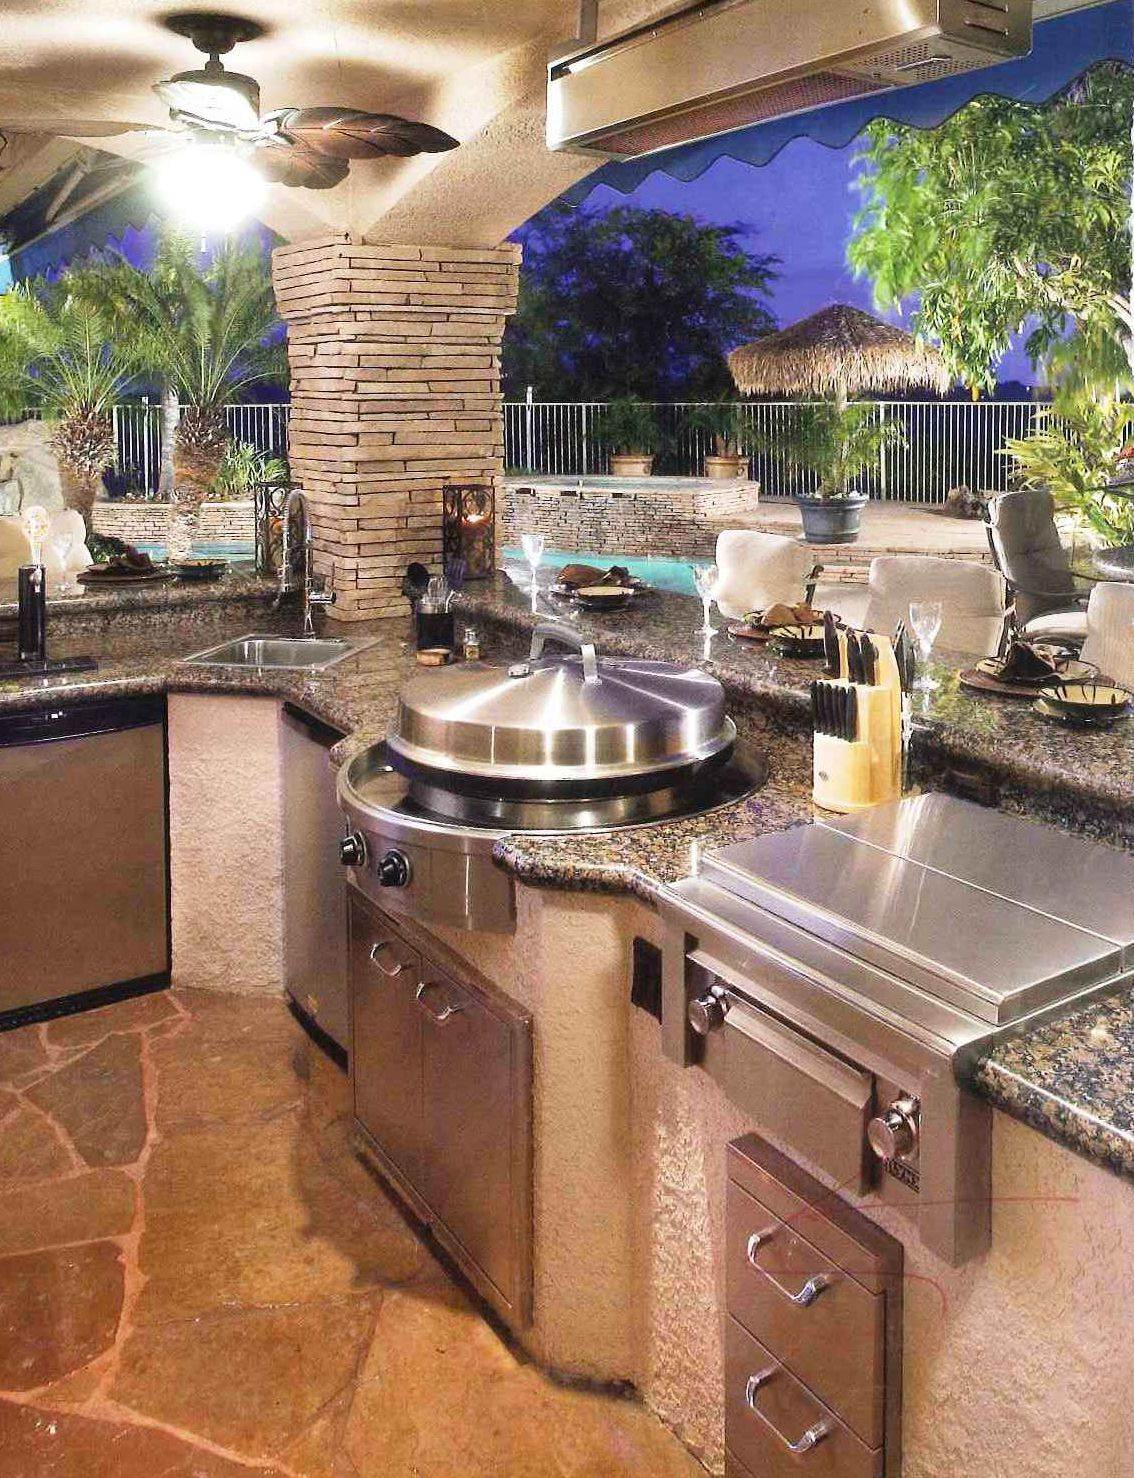 Circular Cooktop in Outdoor Kitchen Appliances Backyard